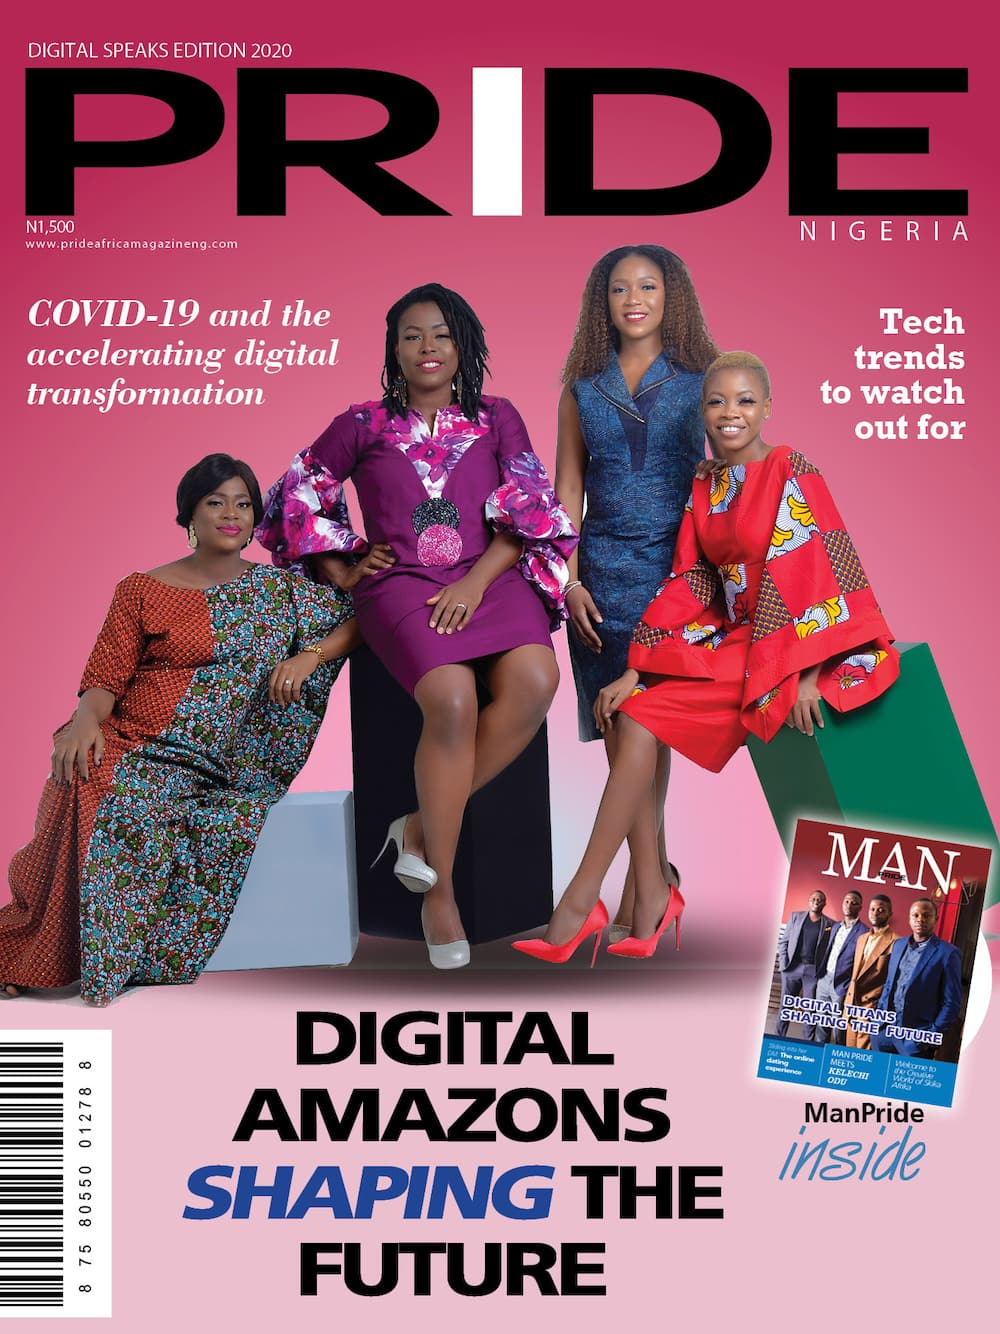 Pride Magazine Nigeria's Digital Speaks Edition to be unveiled at the 2020 Virtual Pride Women Conference